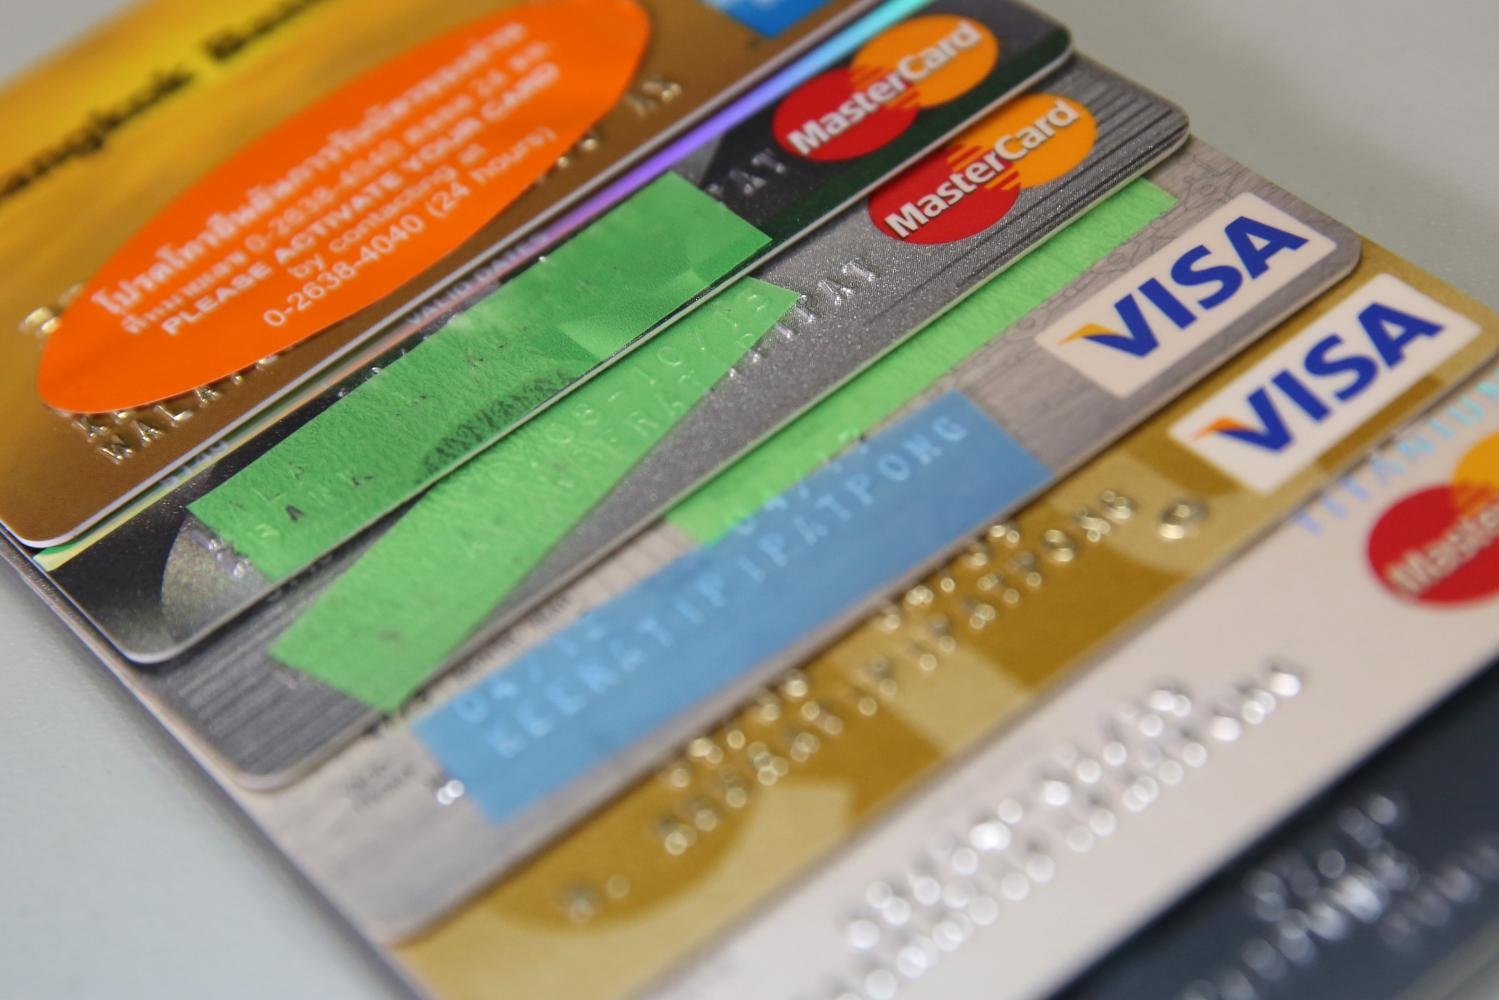 Aeon Thana Sinsap Thailand expects credit card spending to shrink by 10-15% this year.(Photo by Varuth Hirunyatheb)